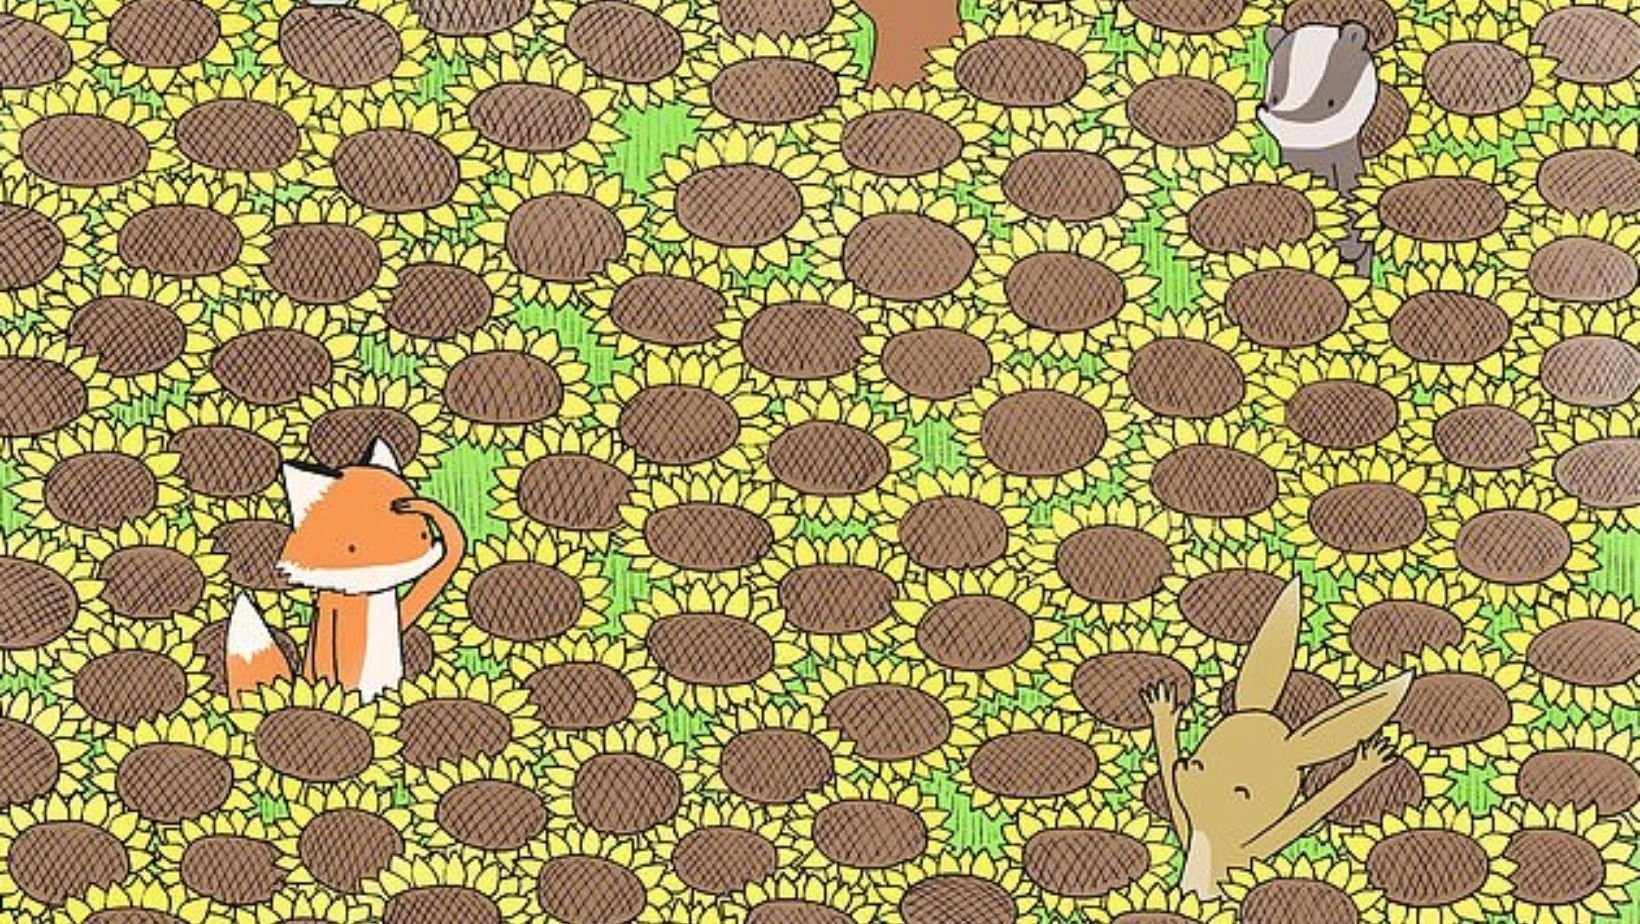 small joys thumbnail 24.jpg?resize=1200,630 - How Fast Can You Spot The Hidden Butterfly In This Photo?